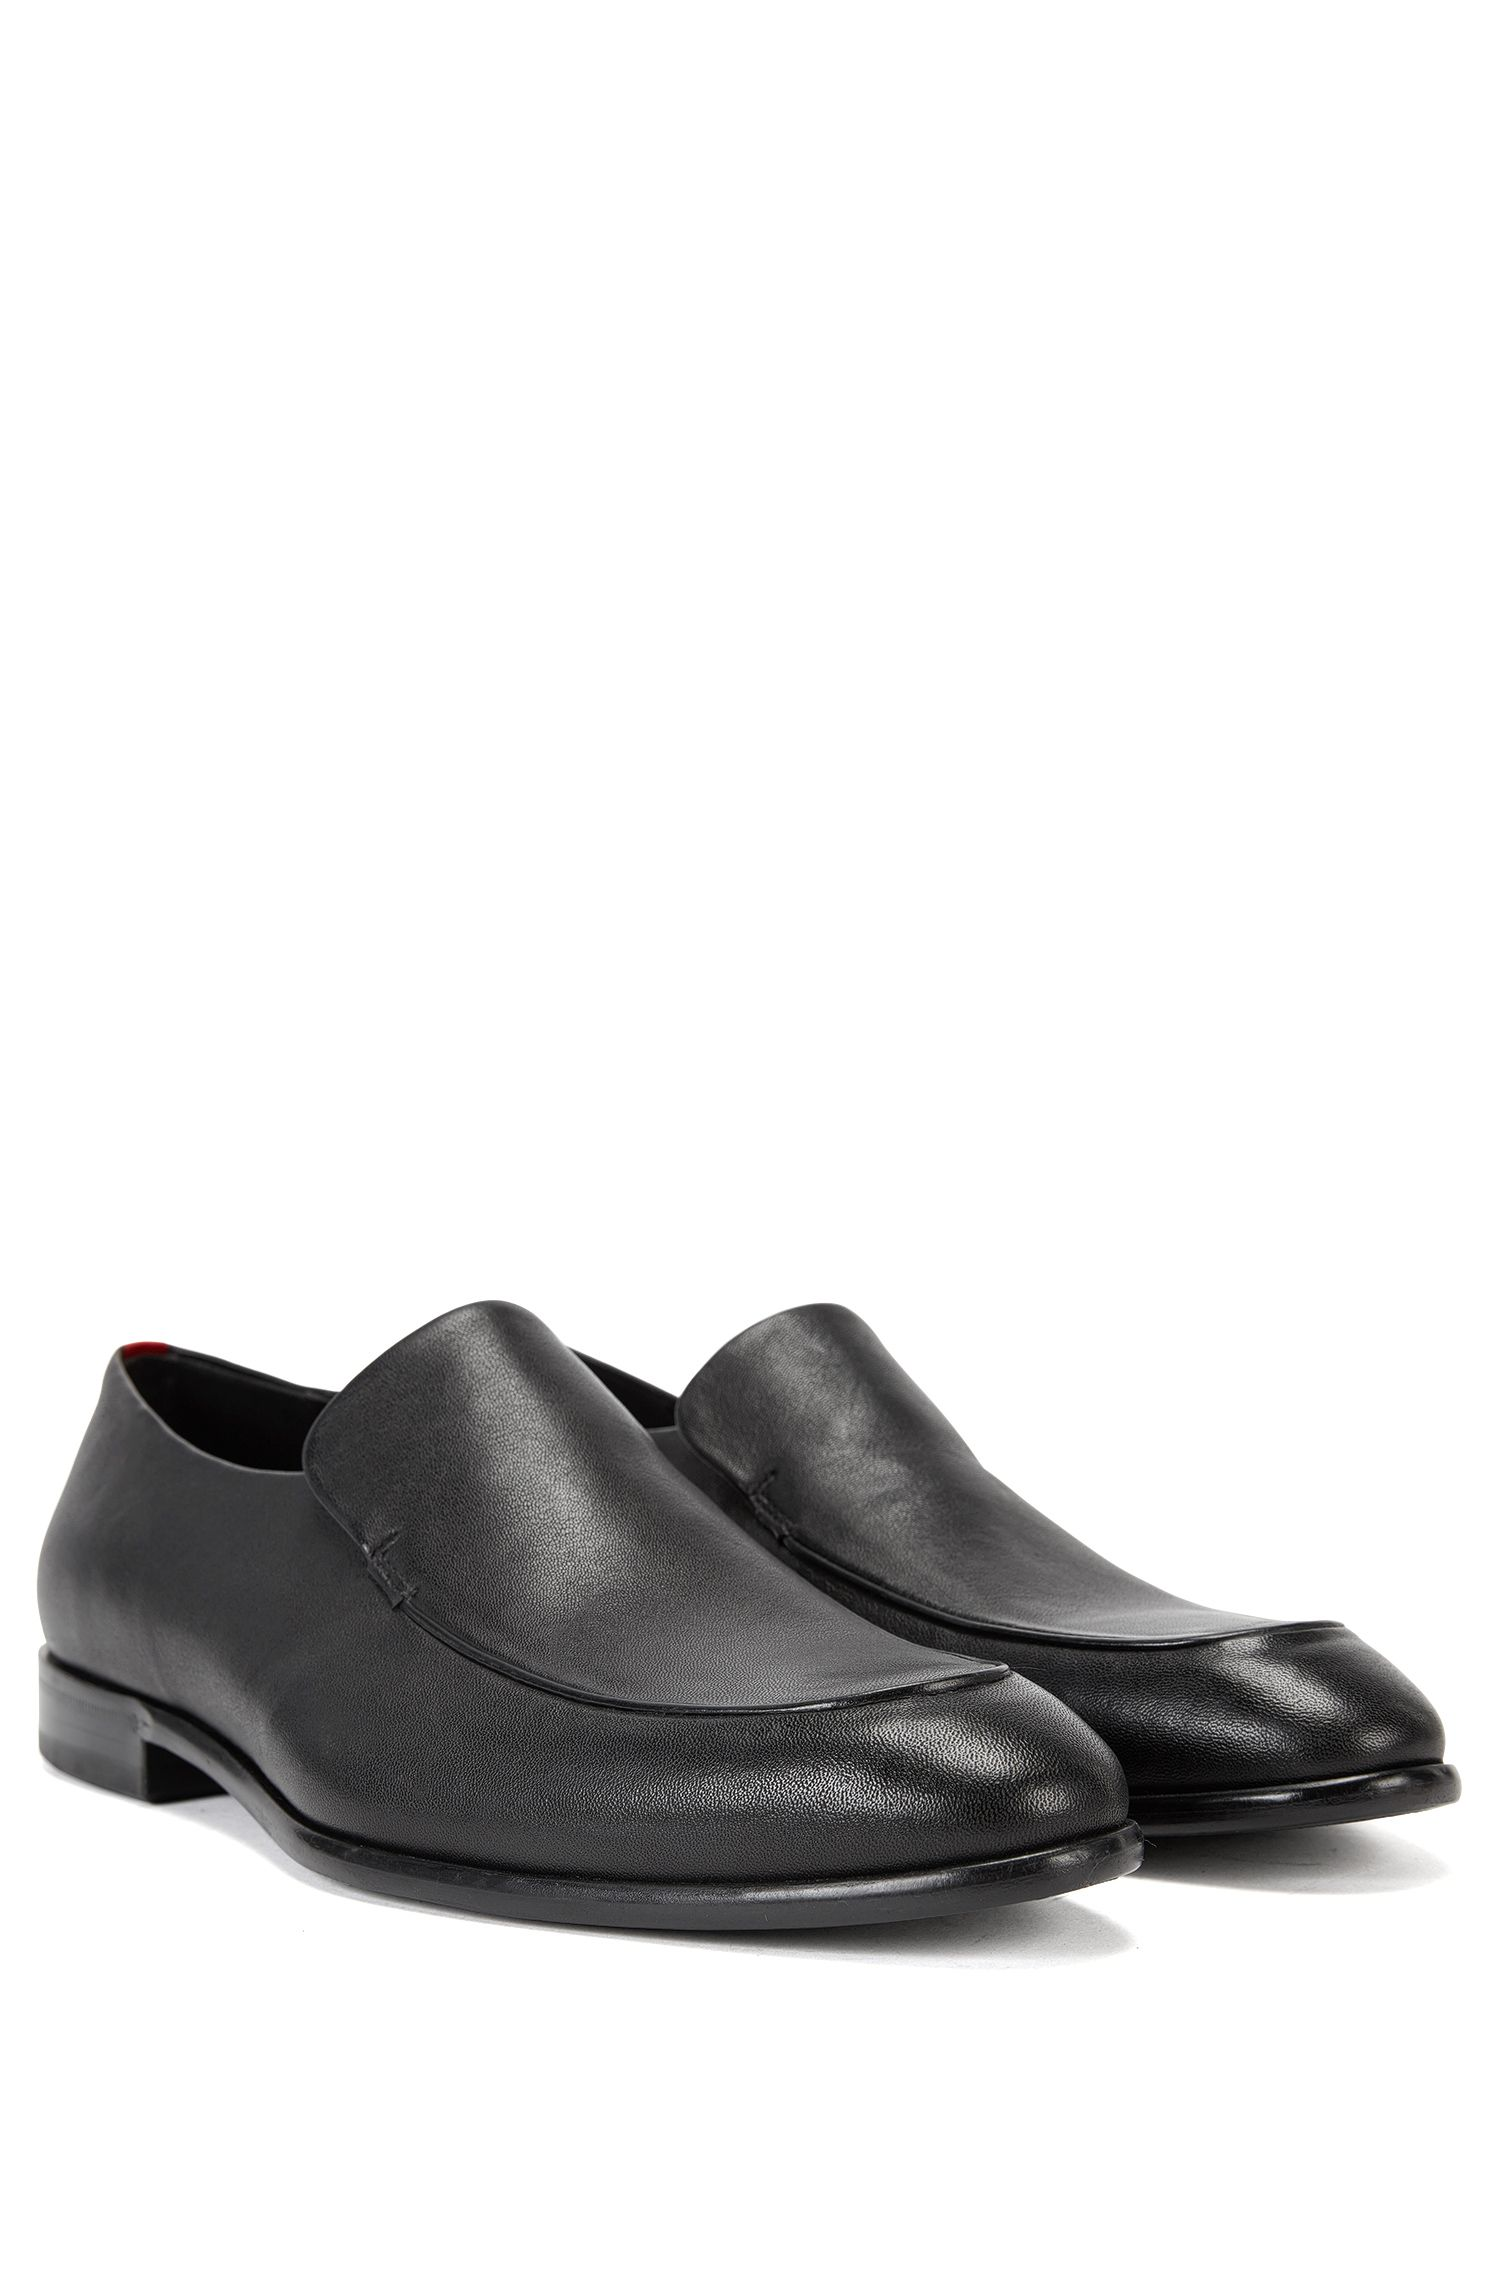 Leather loafers with piping detail